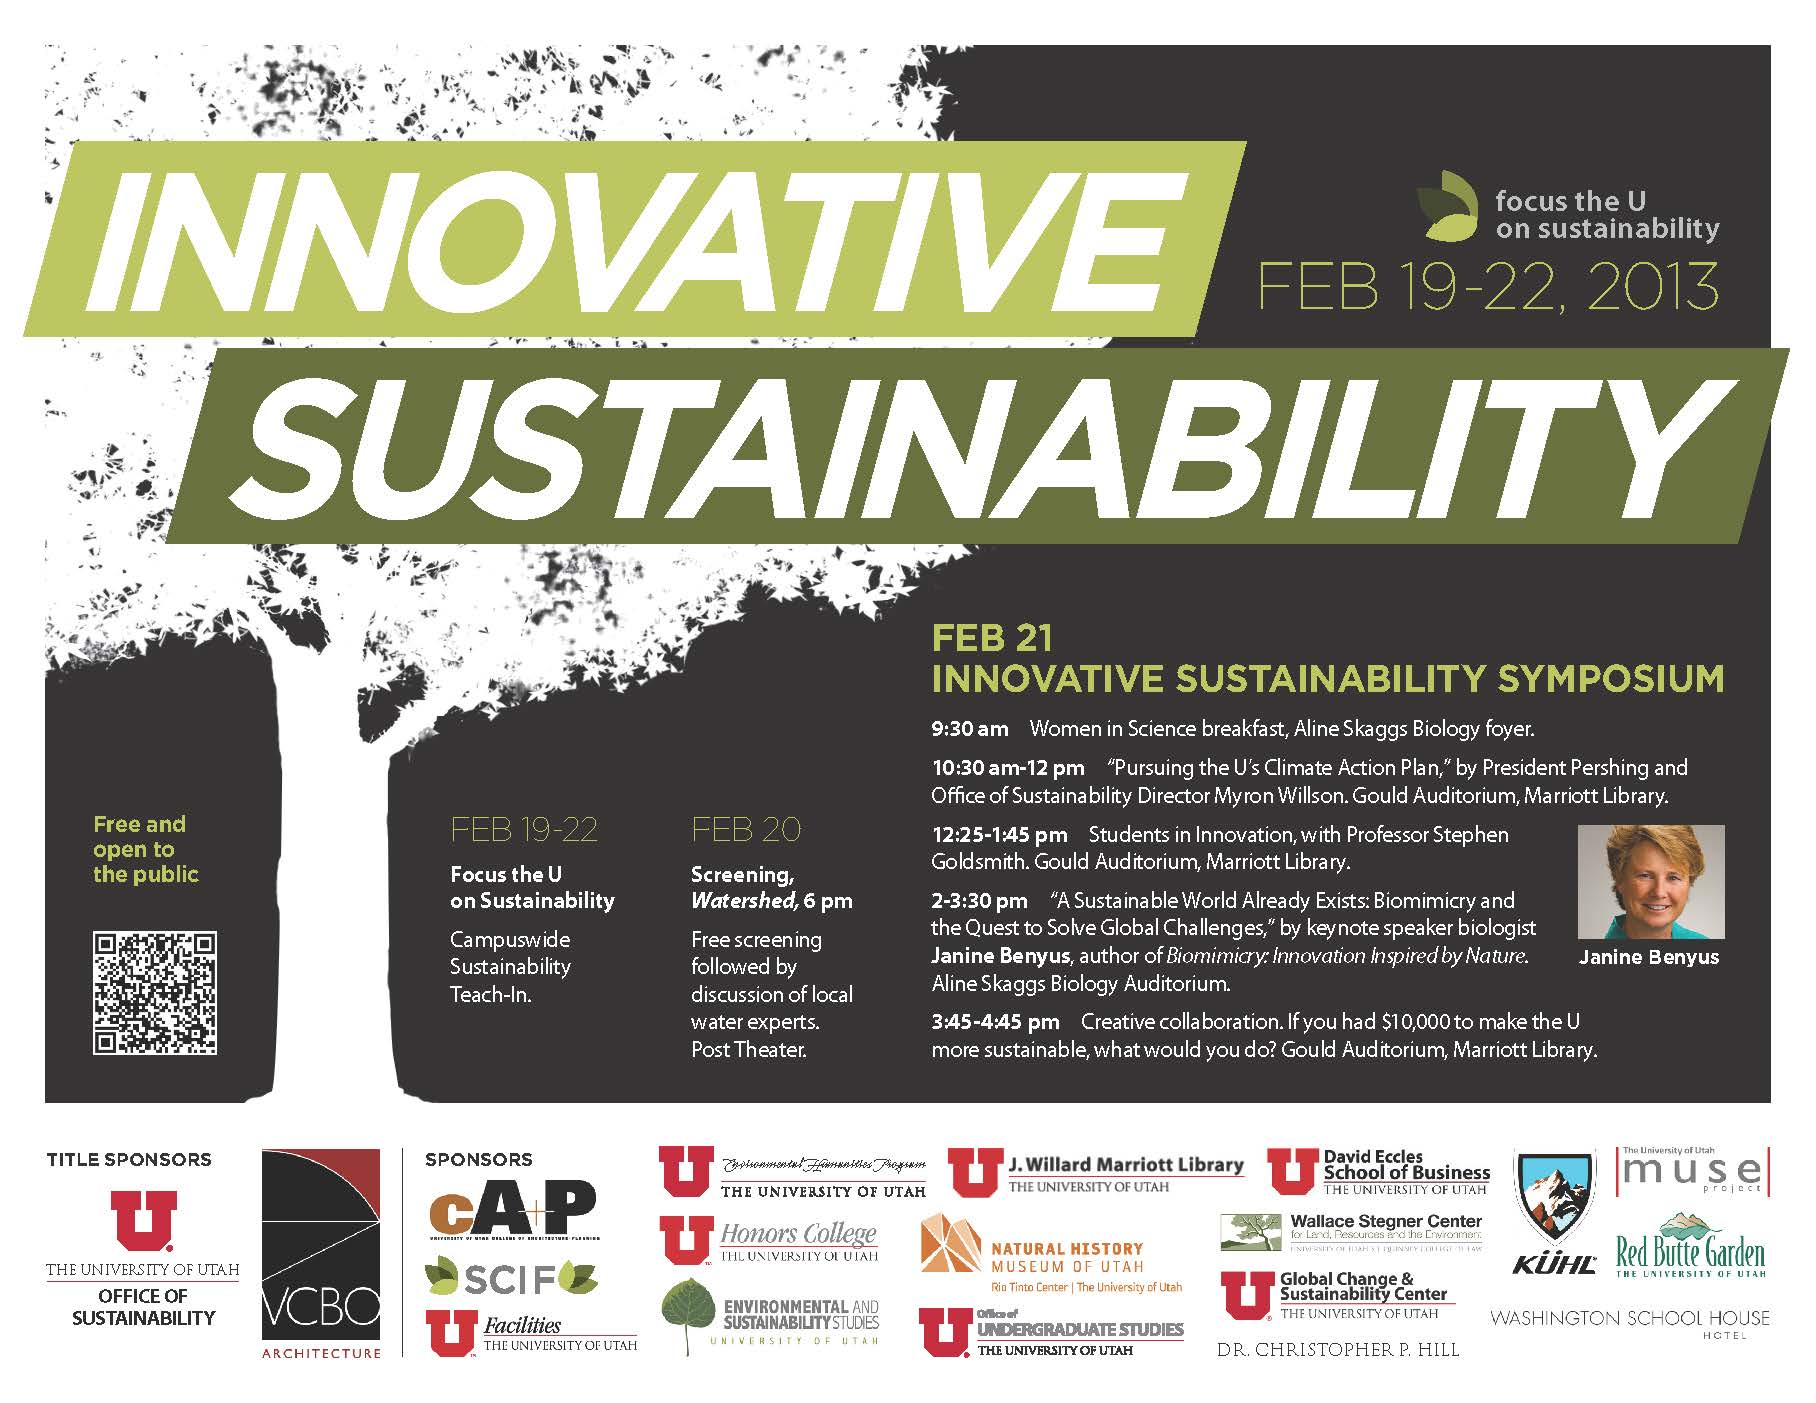 Innovative Sustainability Event February 21, 2013